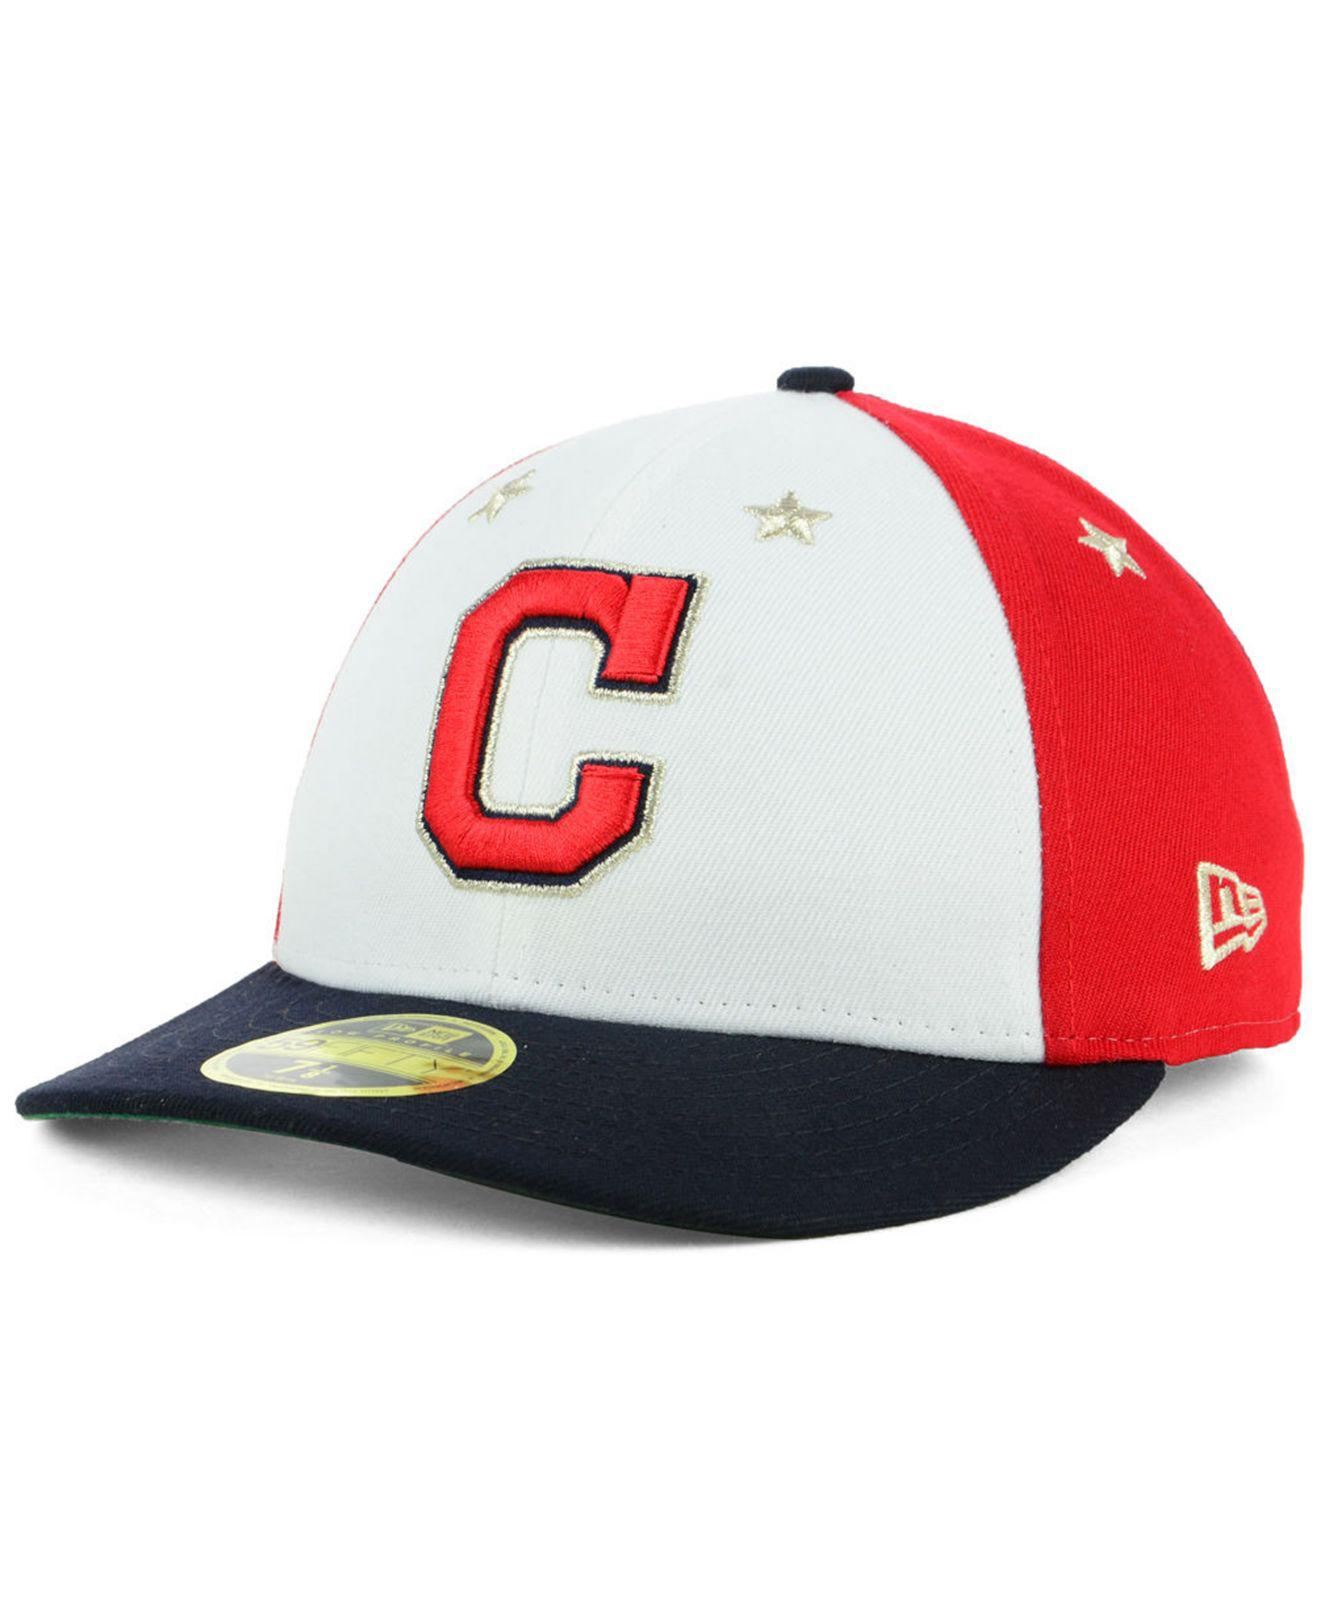 sale retailer 30bee dd1e0 ... coupon all star game patch low profile 59fifty fitted cap 2018 for.  view fullscreen 35f2c